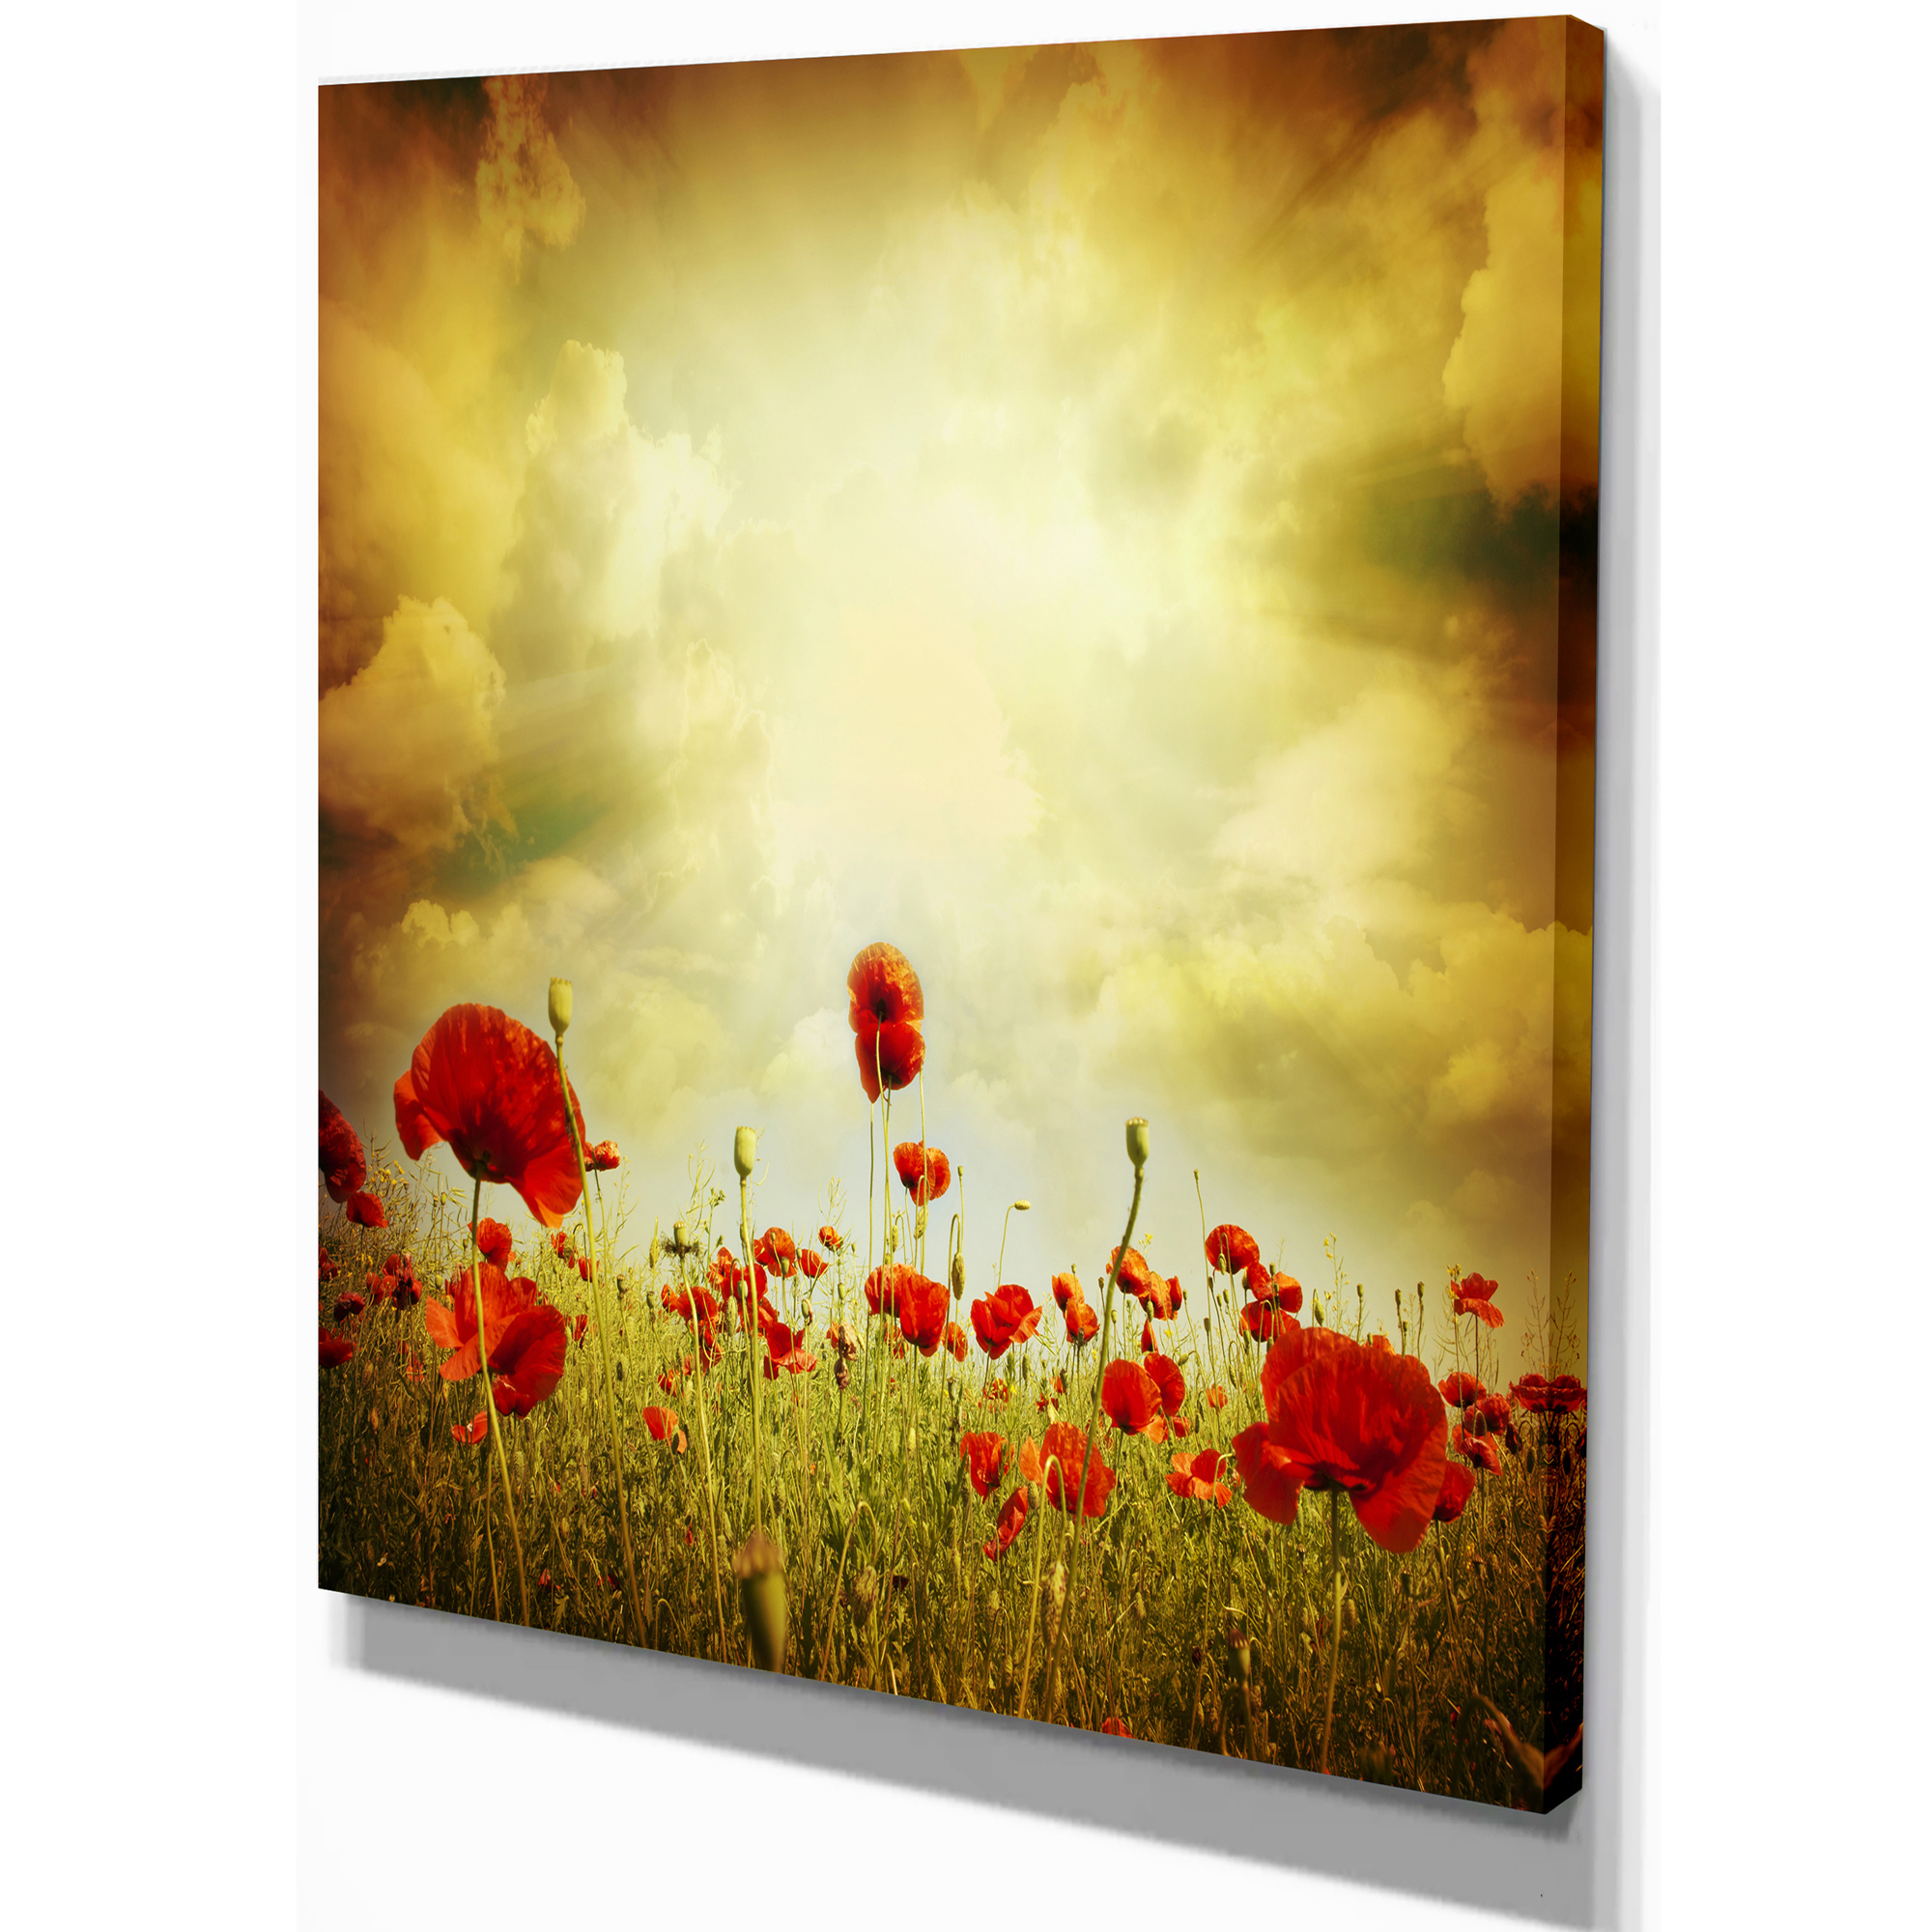 Red Poppies on Grunge Background - Floral Canvas Art Print - image 2 de 3